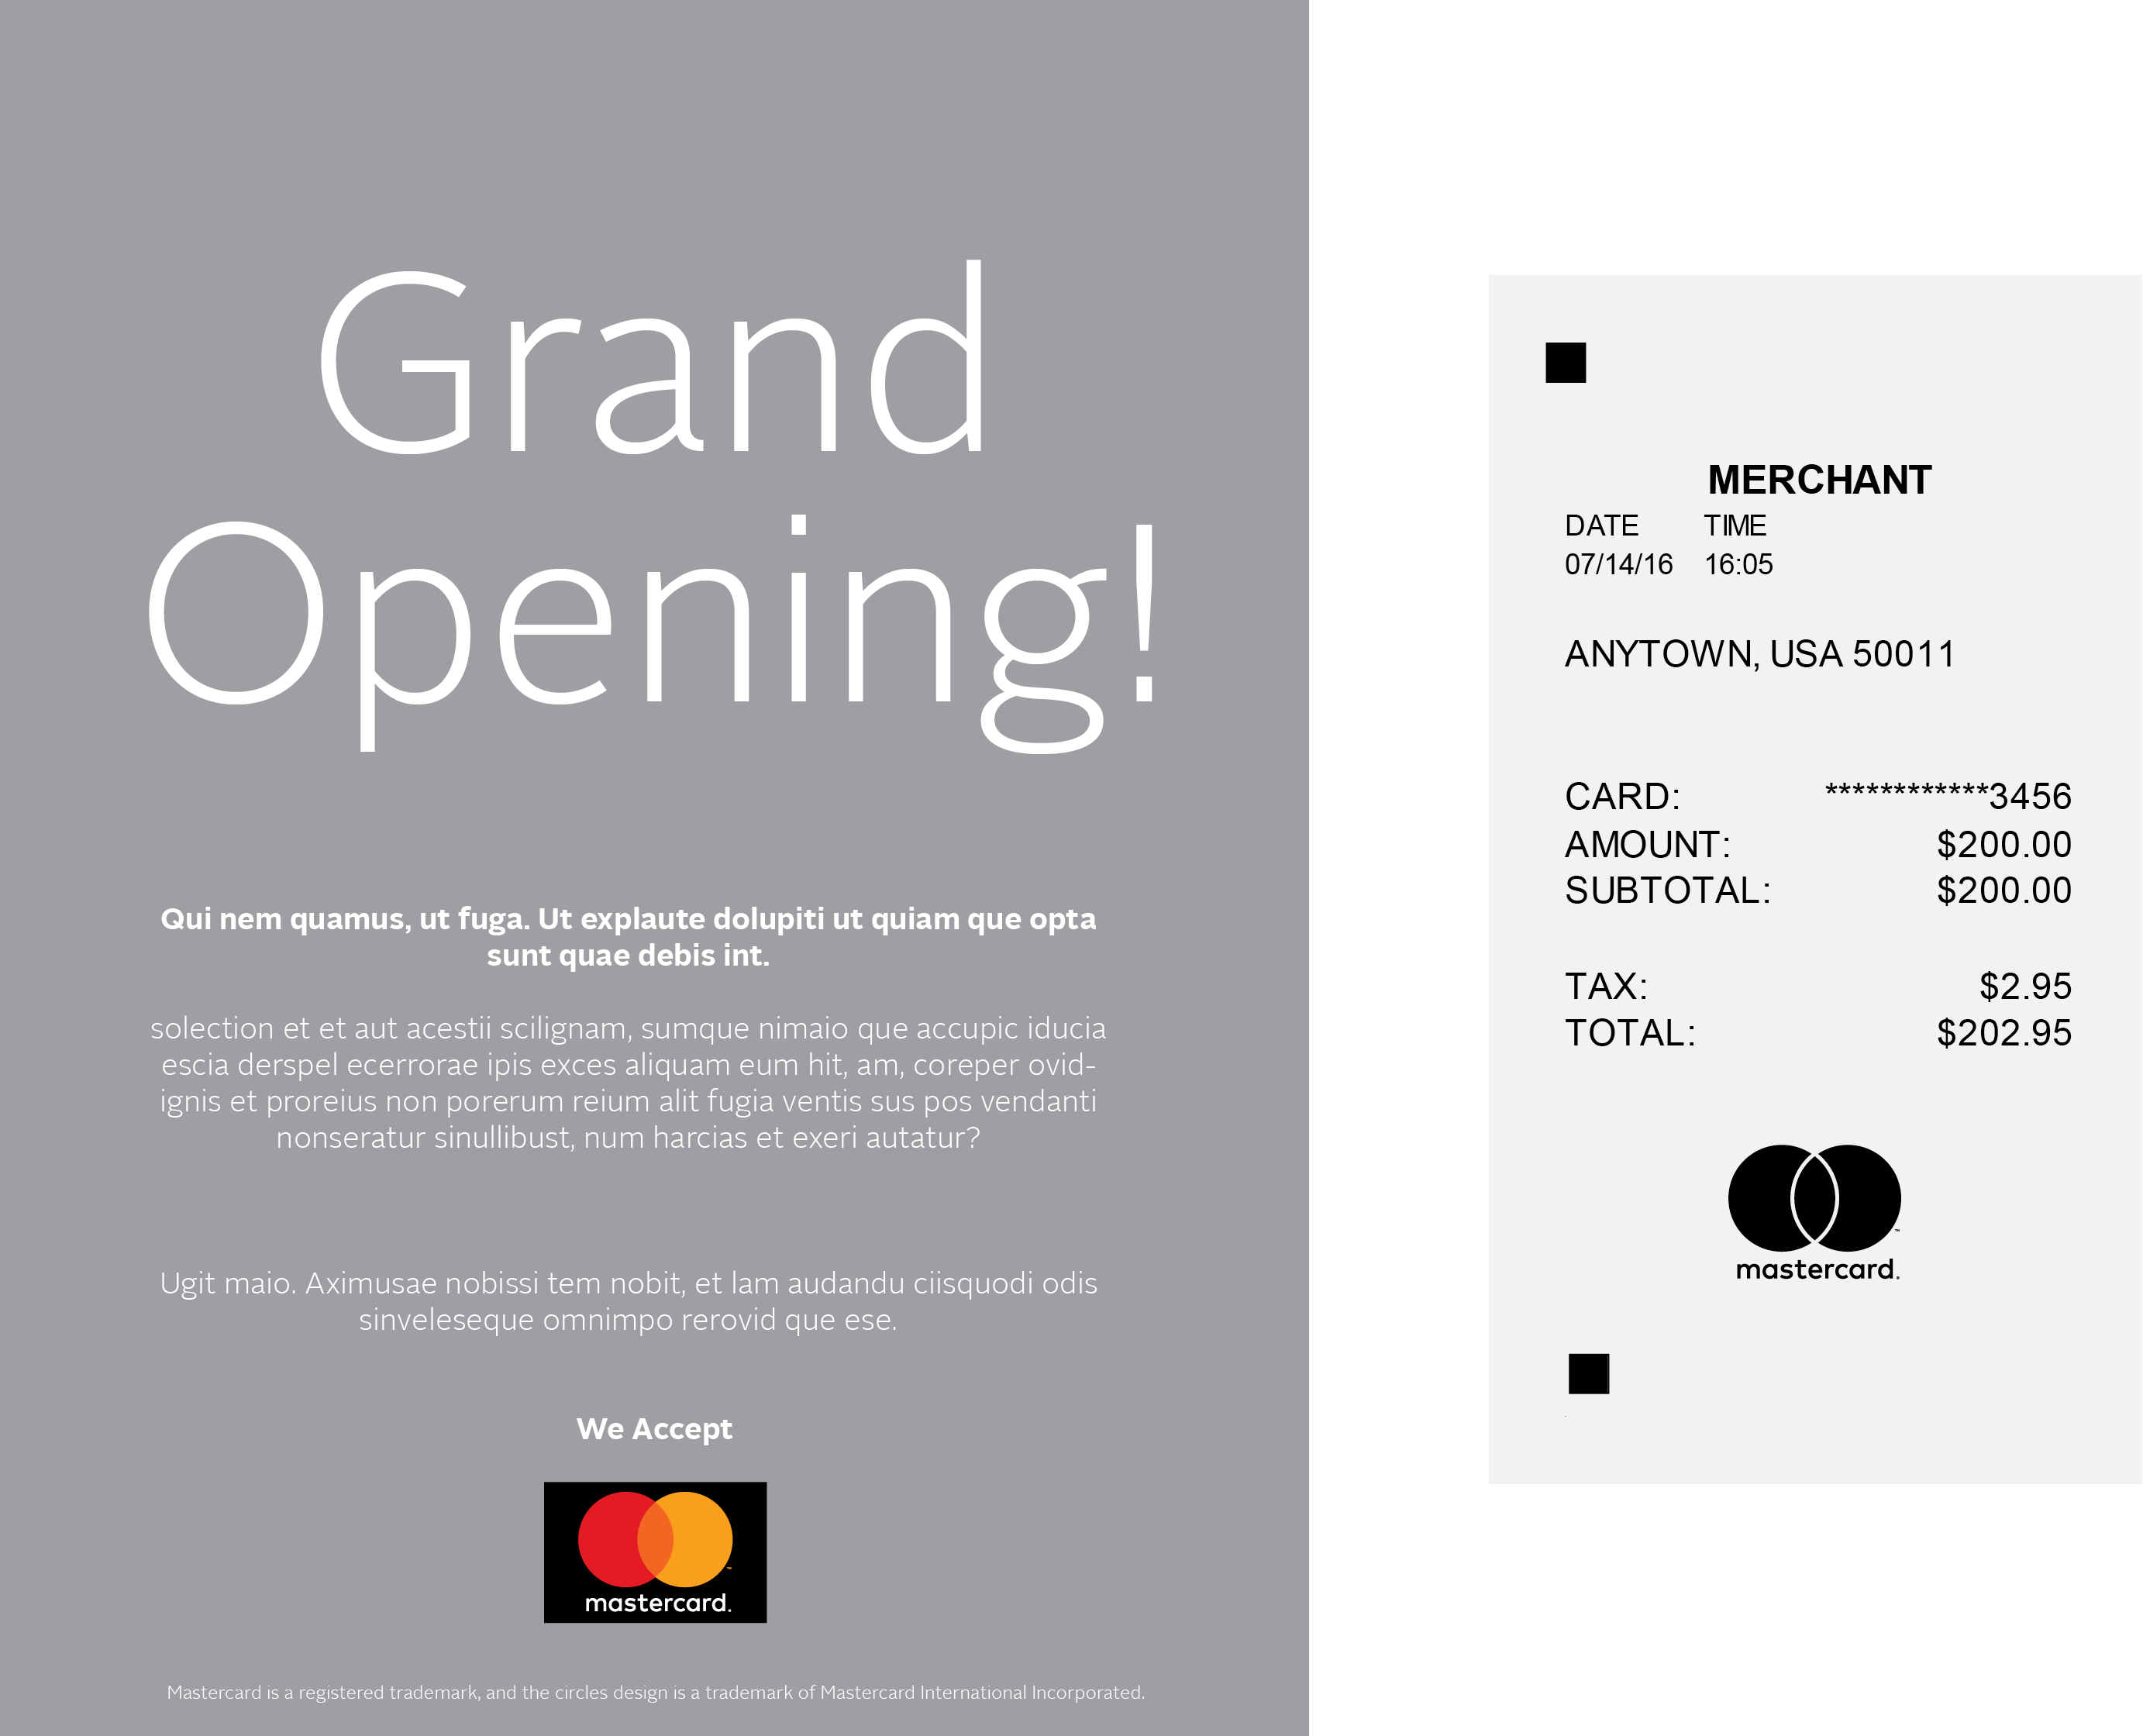 Mastercard brand mark guidelines logo usage rules images of using the full color mastercard logo in merchant advertising and using the one buycottarizona Gallery